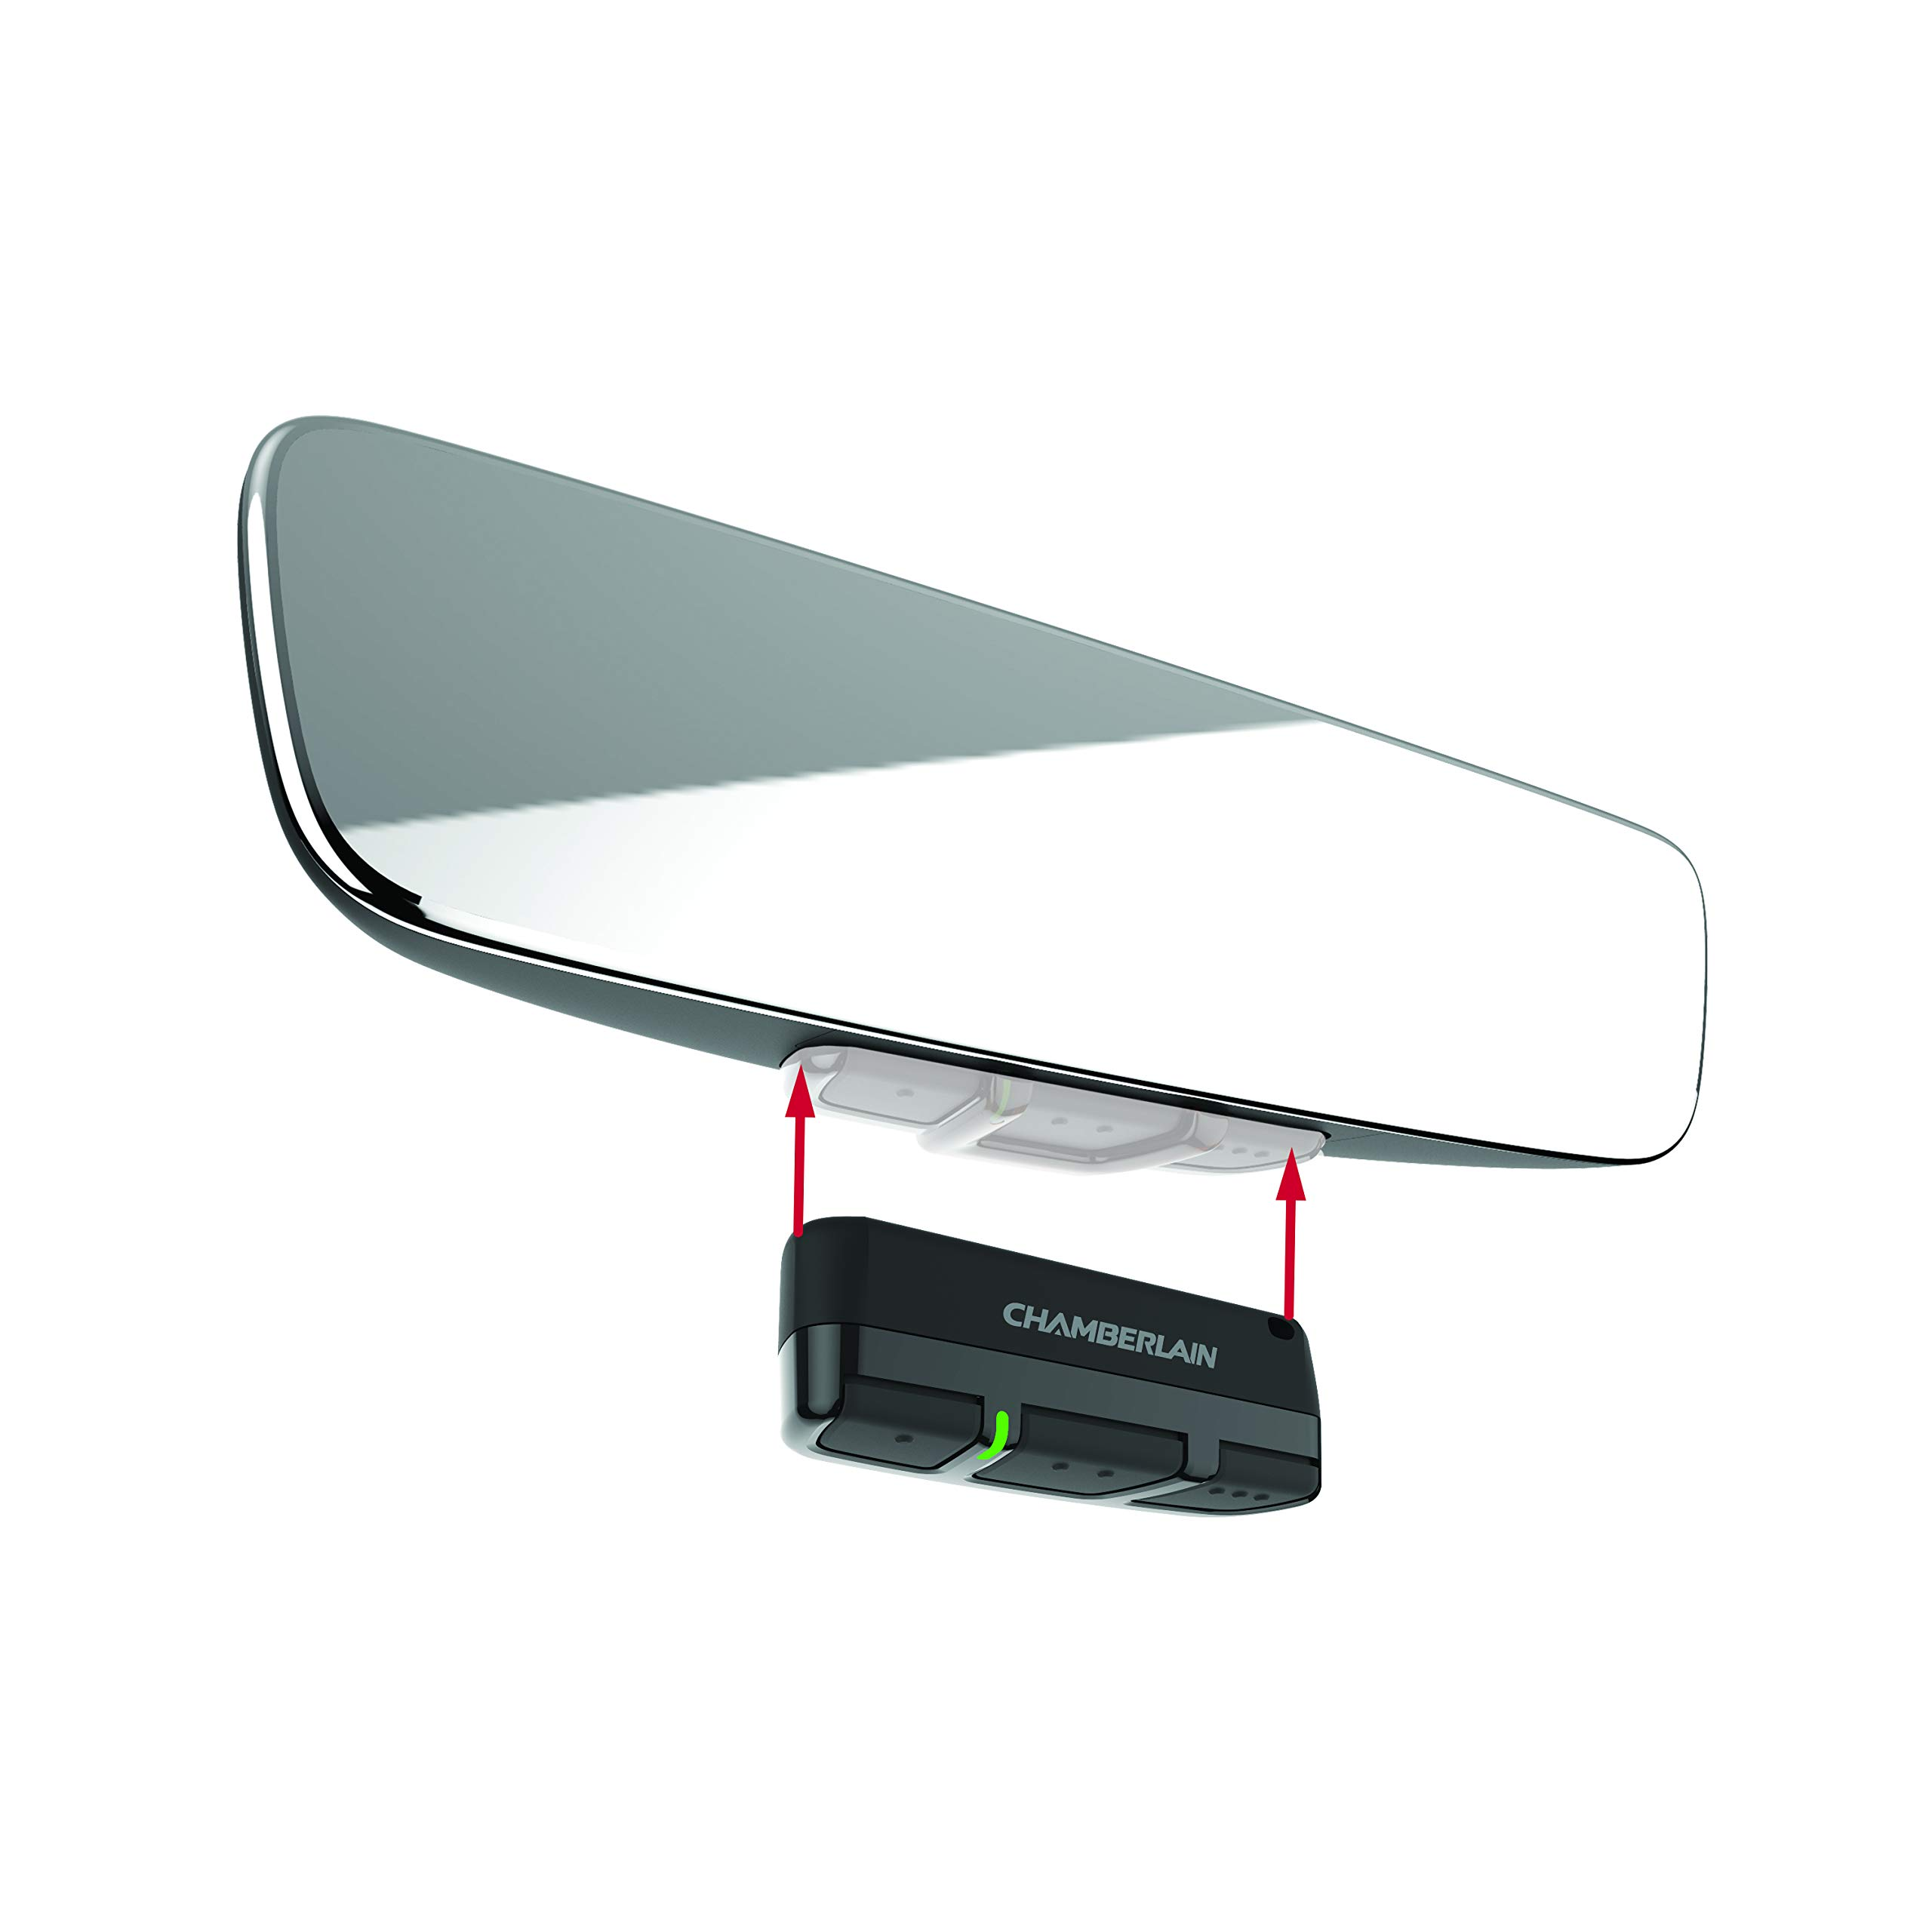 Brandmotion 1110-2520 Frameless Manual Dim Rear View Mirror with Universal Remote Control by Brandmotion (Image #2)